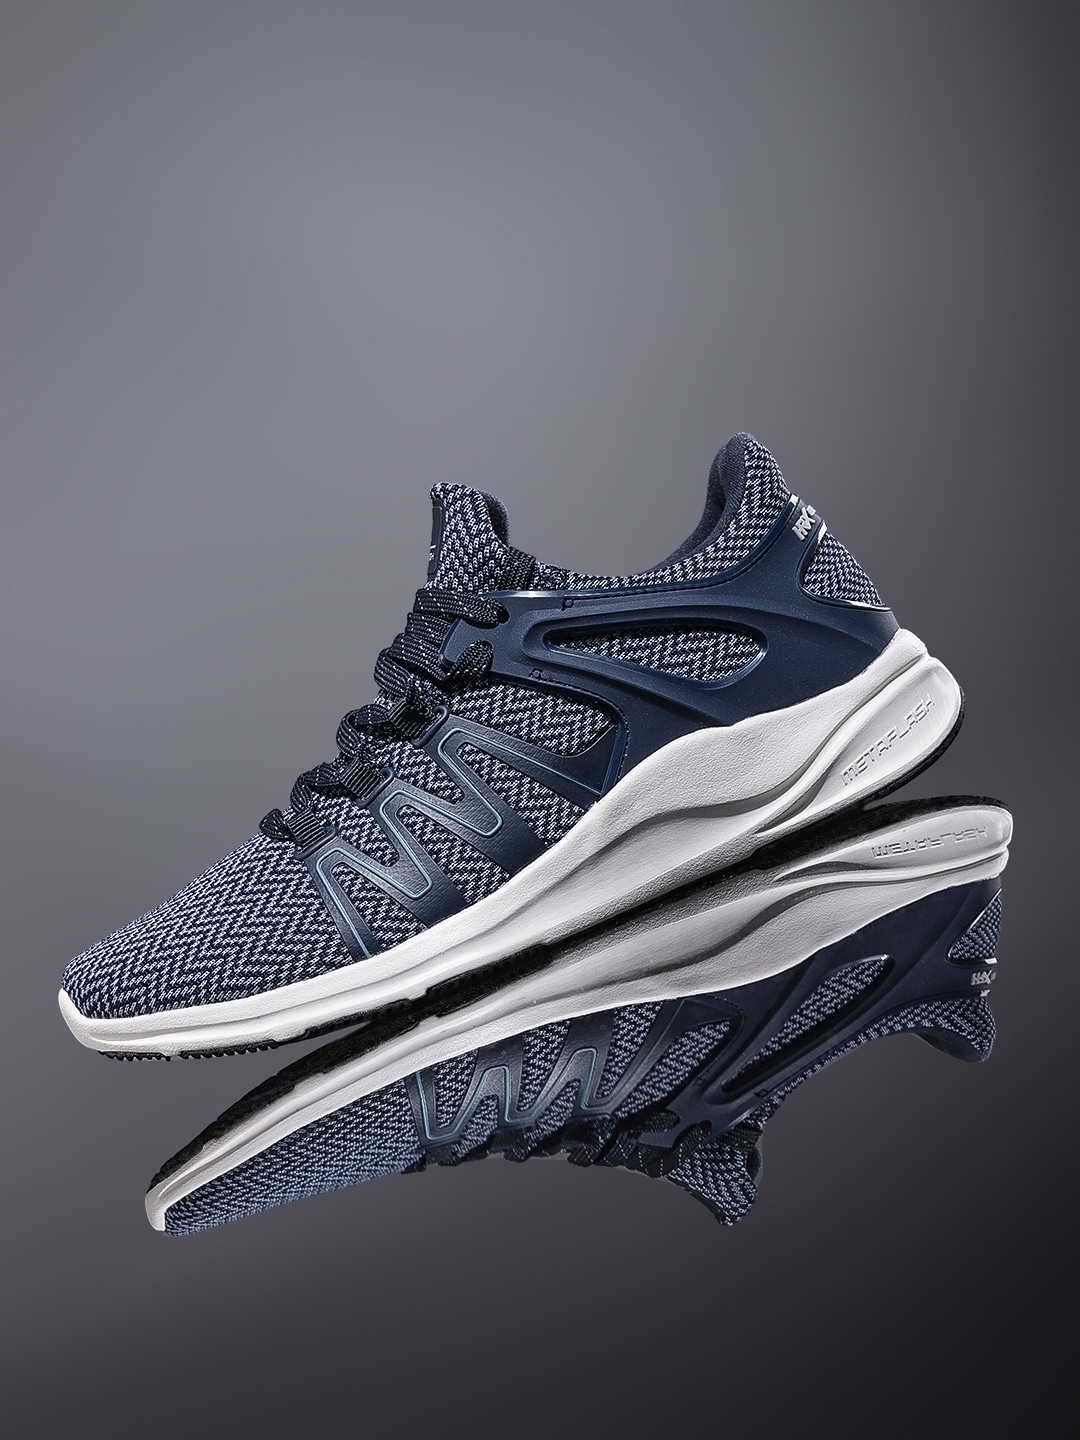 8dcbc966553 Sports Shoes for Men - Buy Men Sports Shoes Online in India - Myntra